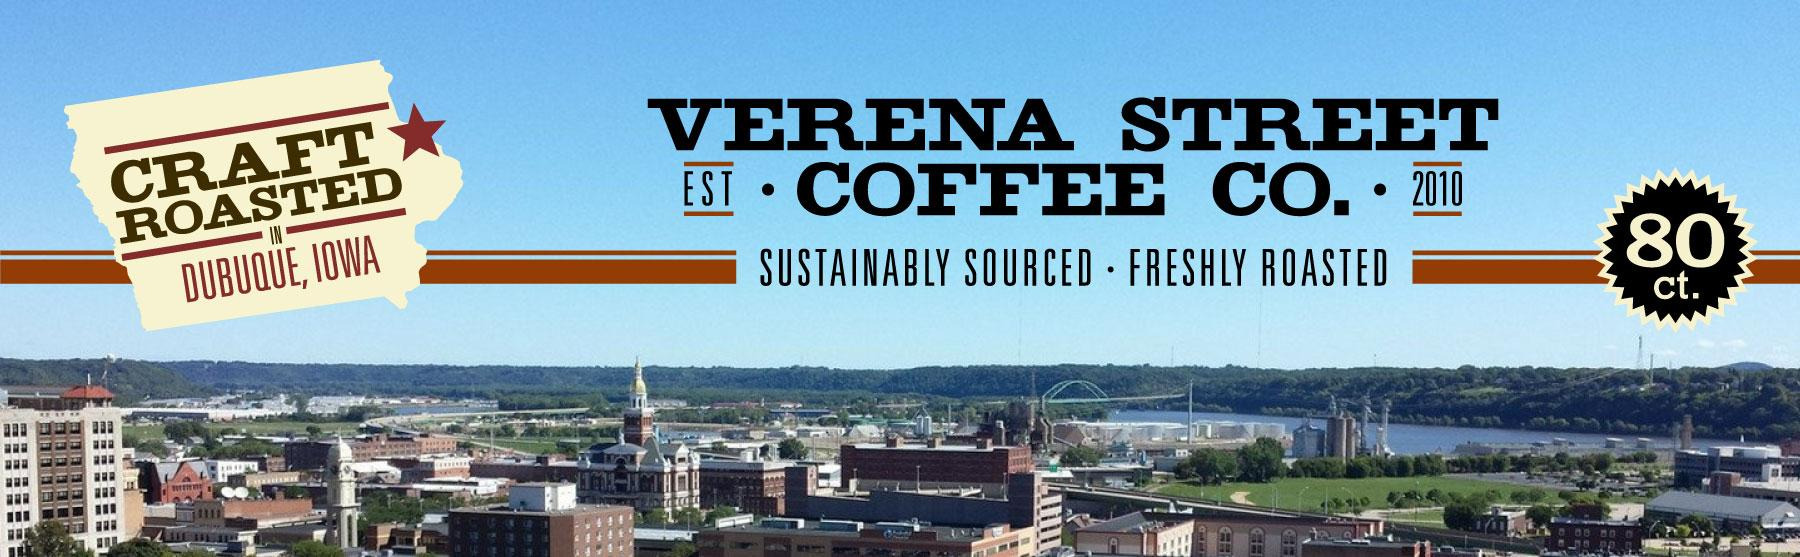 verena street single cup pods 80 count flavored coffee